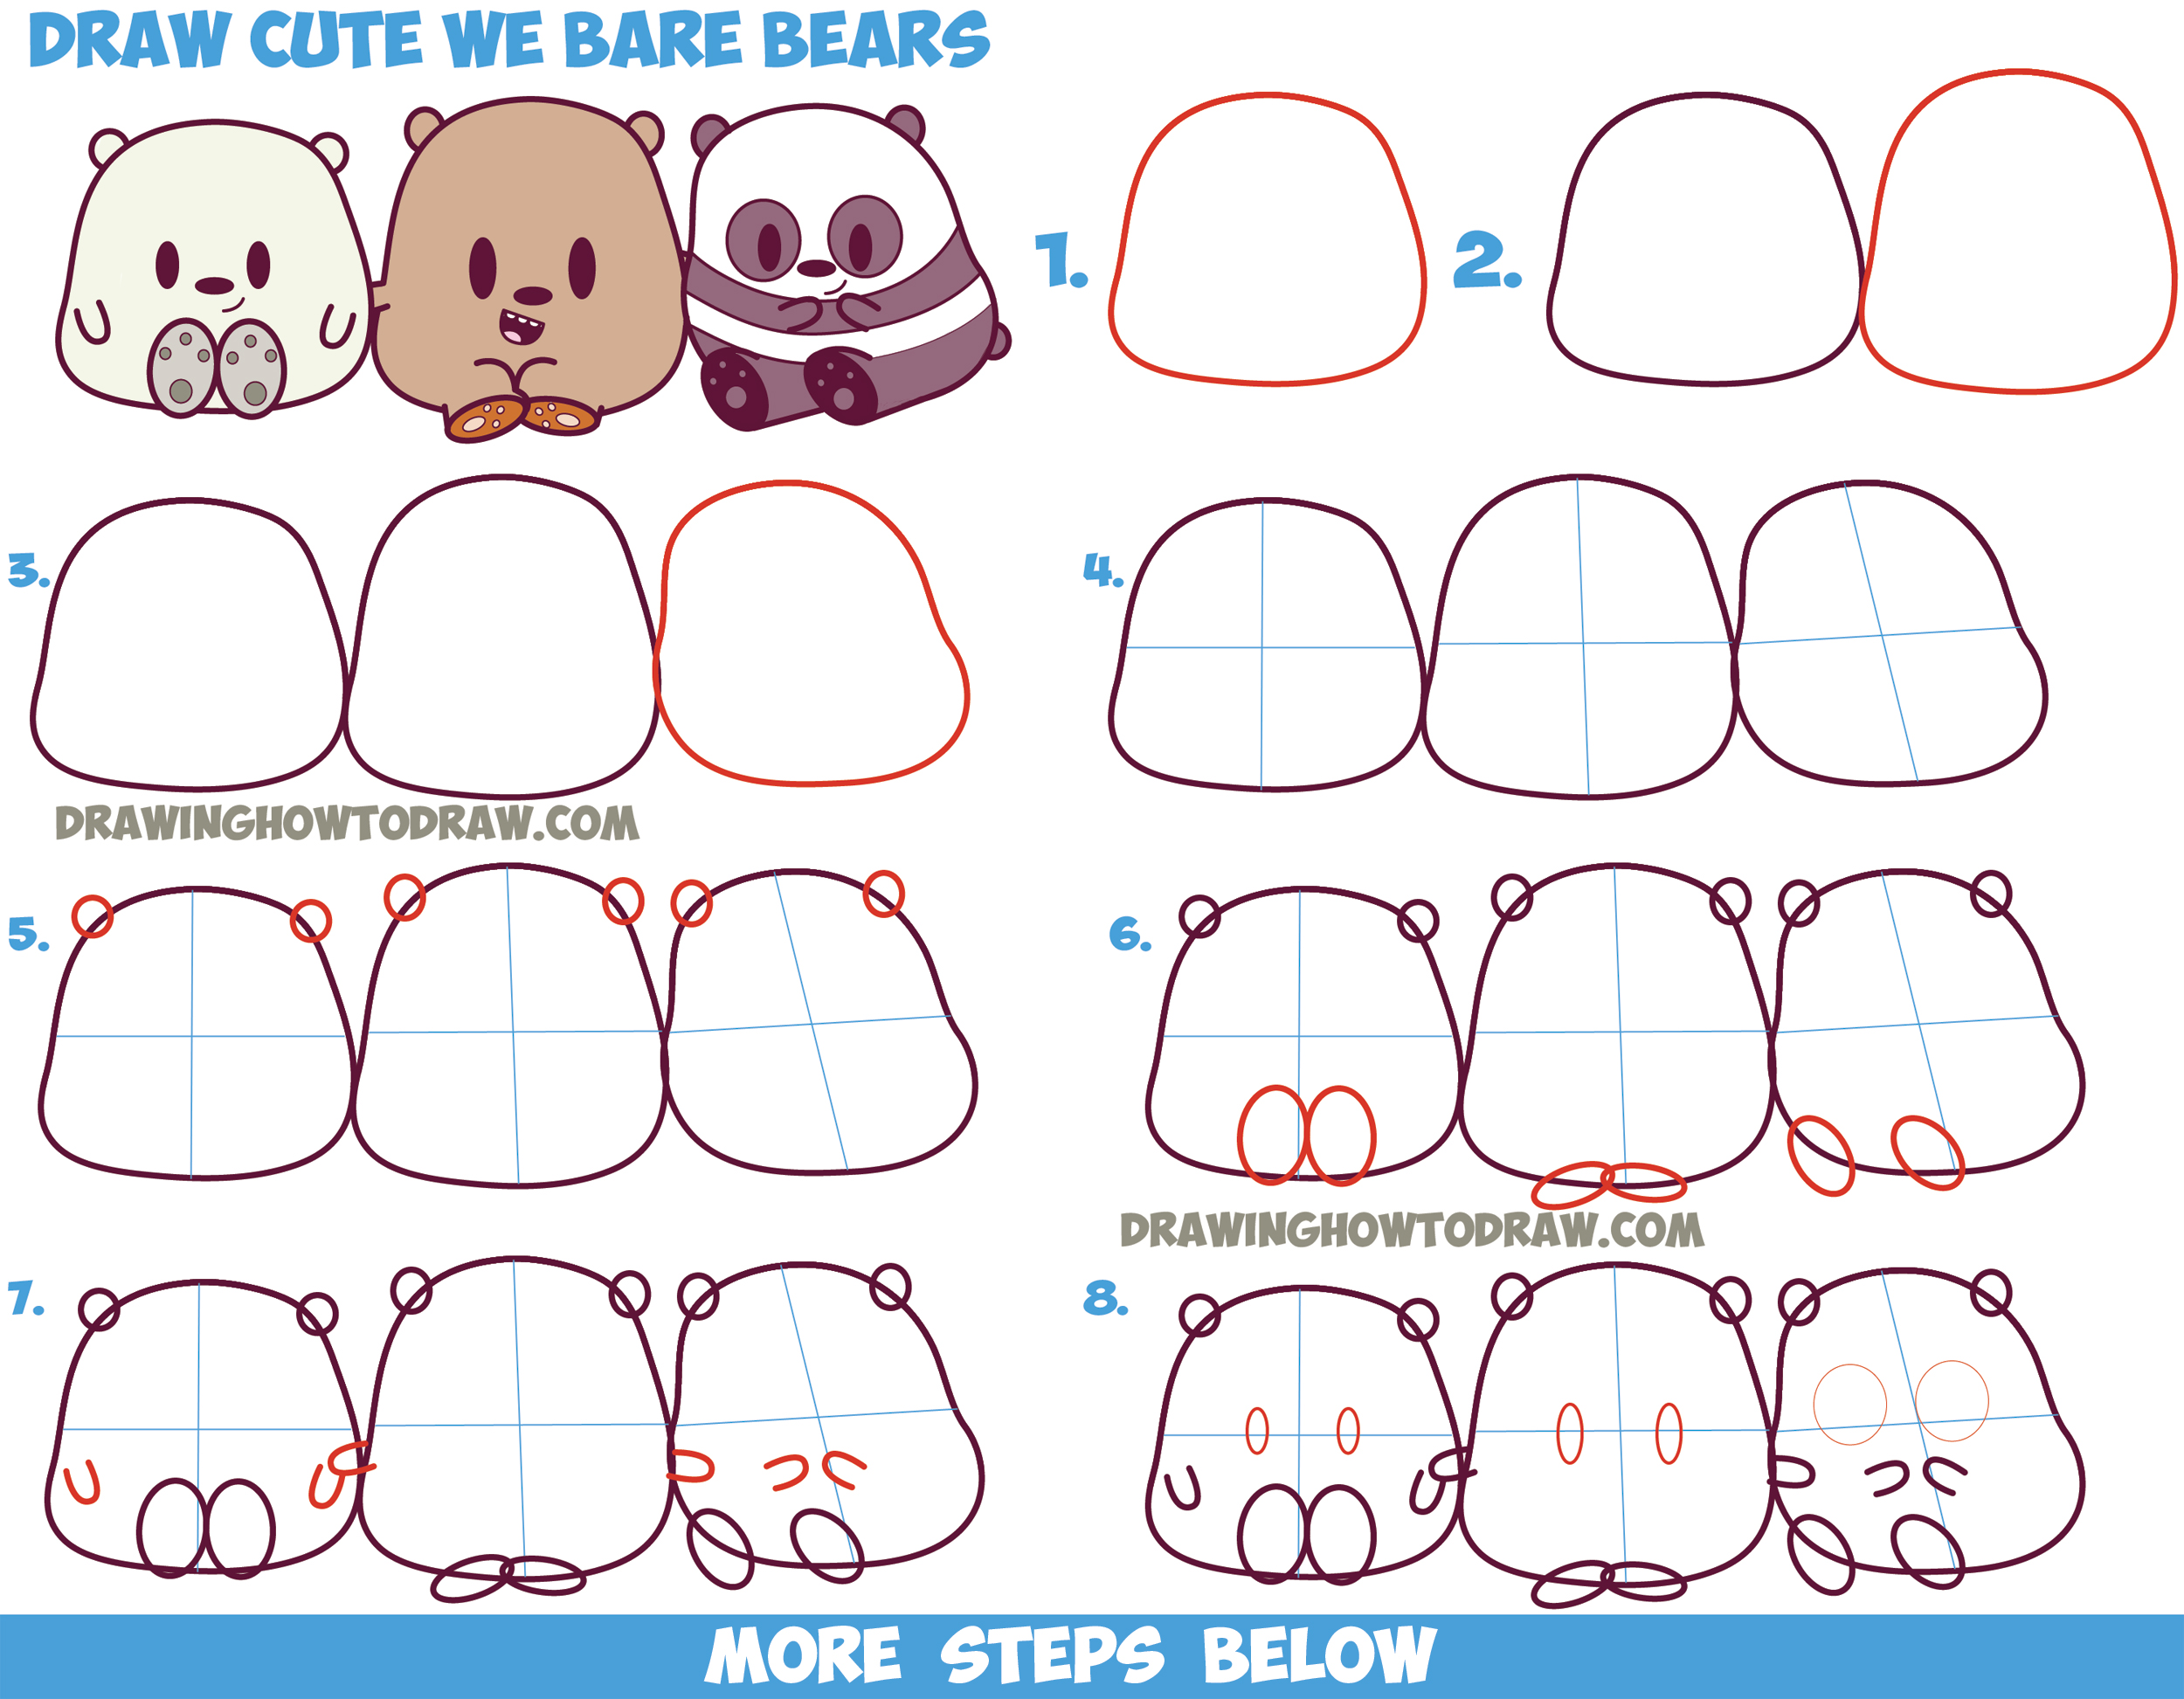 2500x1945 How To Draw We Bare Bears Cute Kawaii Chibi Baby Style